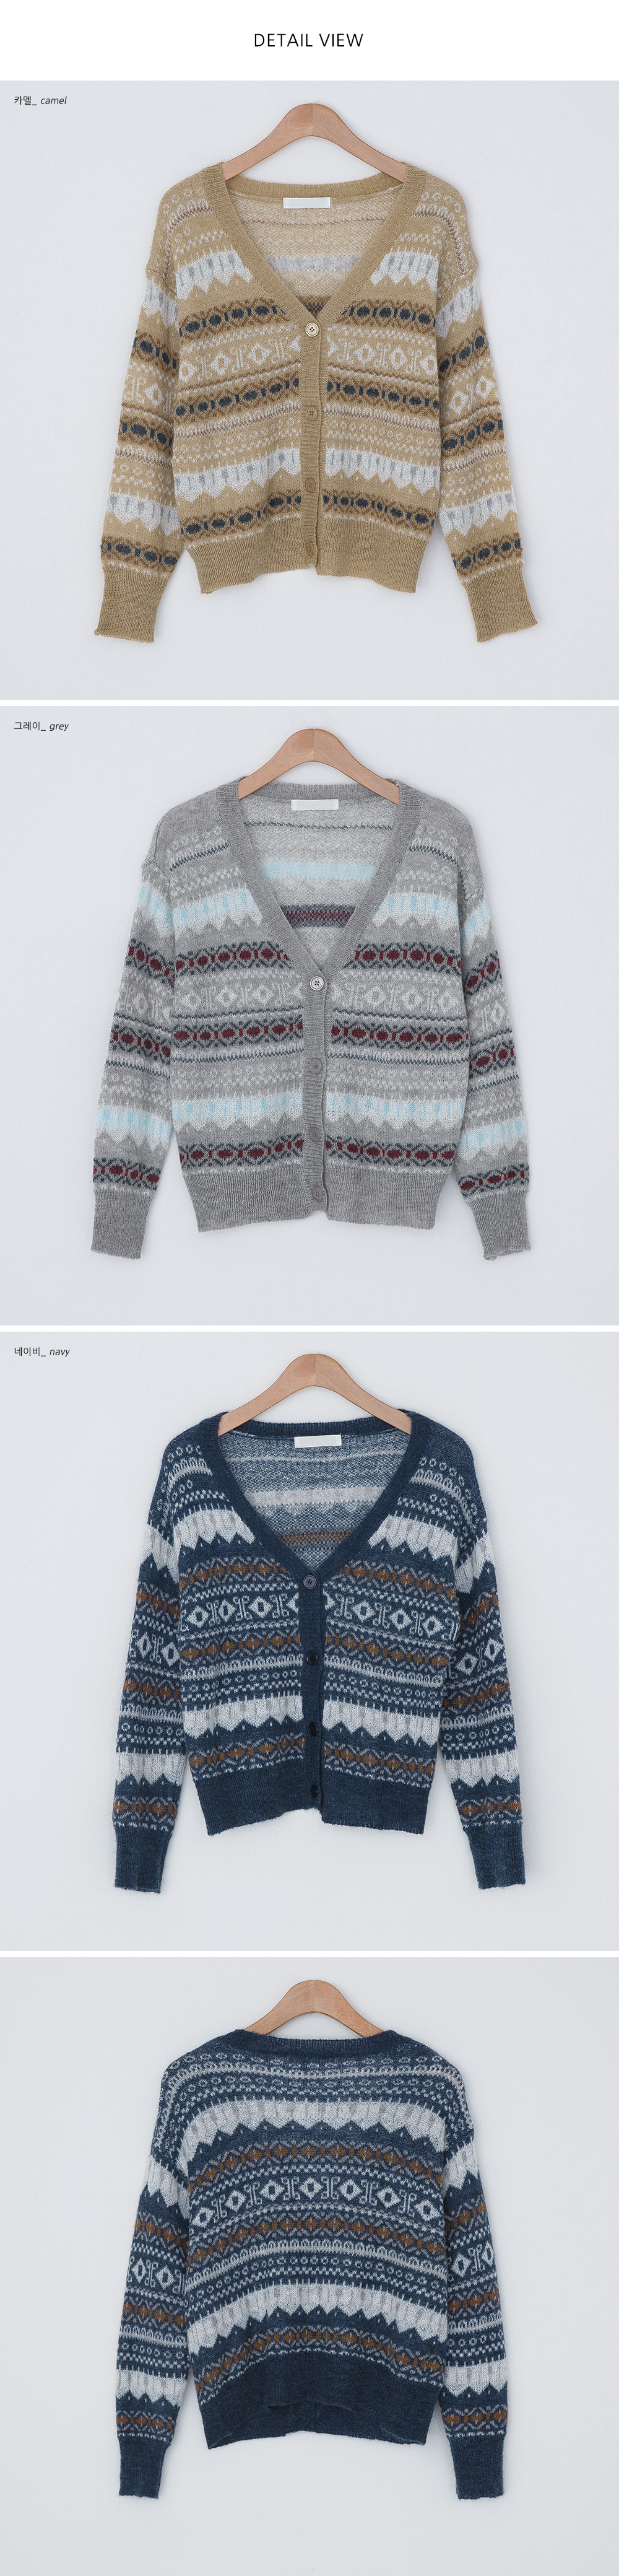 Snow nordic wool cardigan